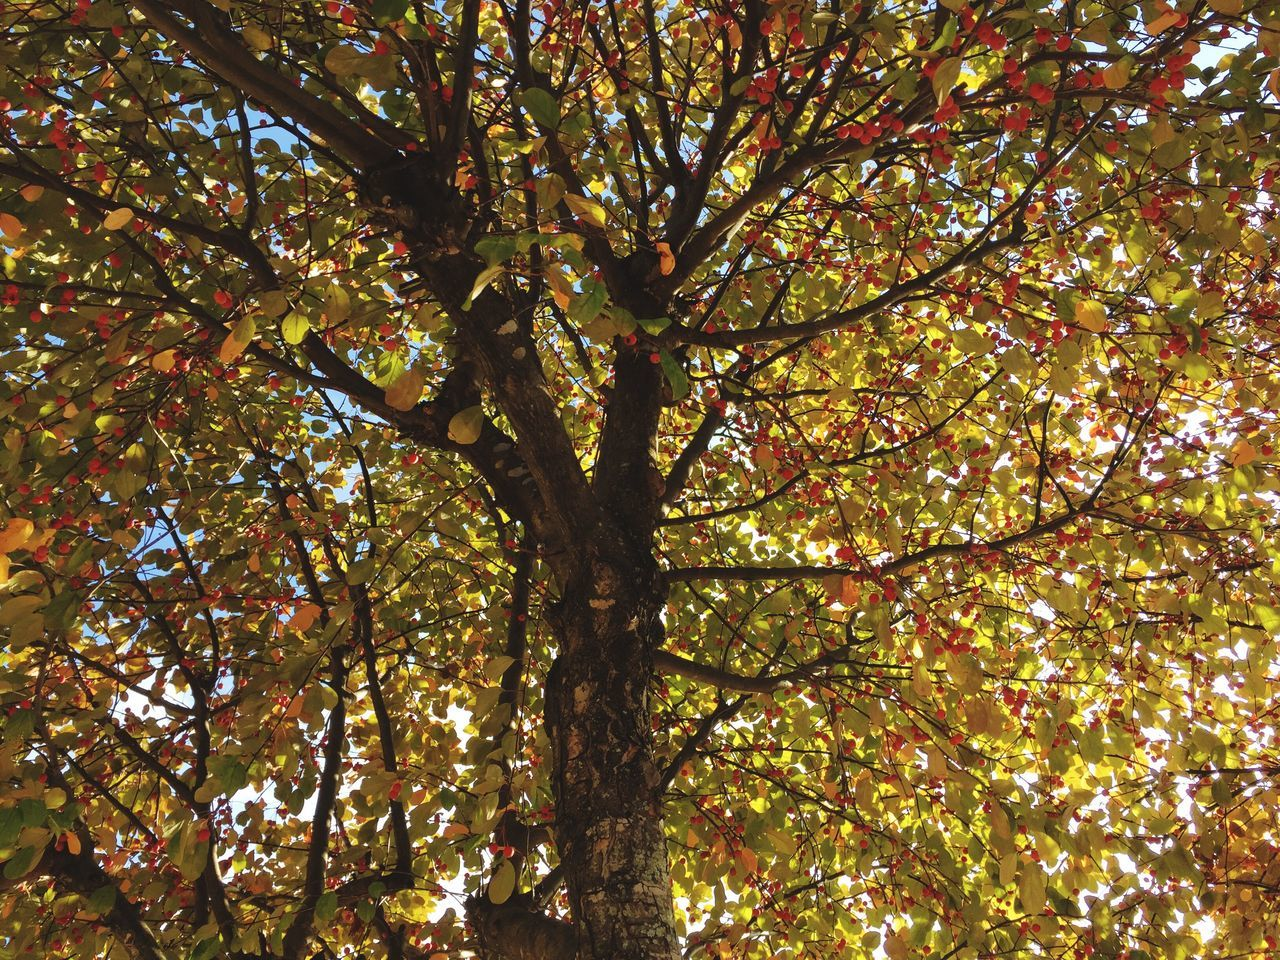 View Of Tree With Autumn Leaves